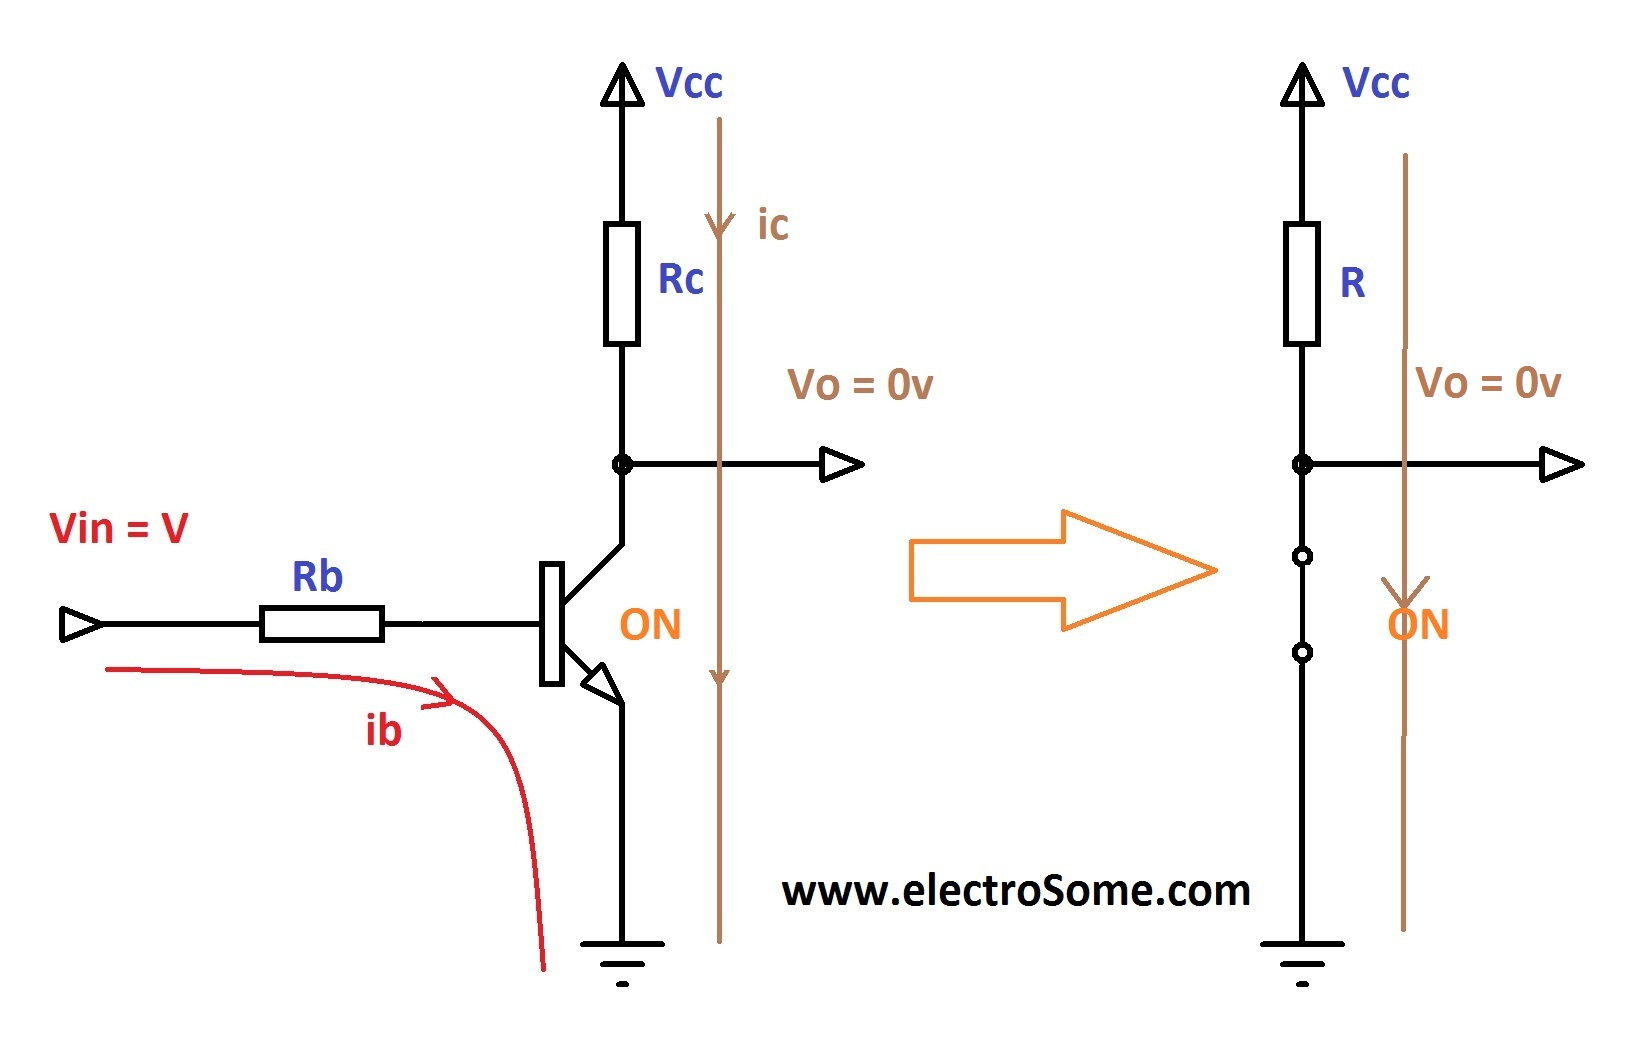 Transistor As A Switch Switched Schematic Wiring Diagram On